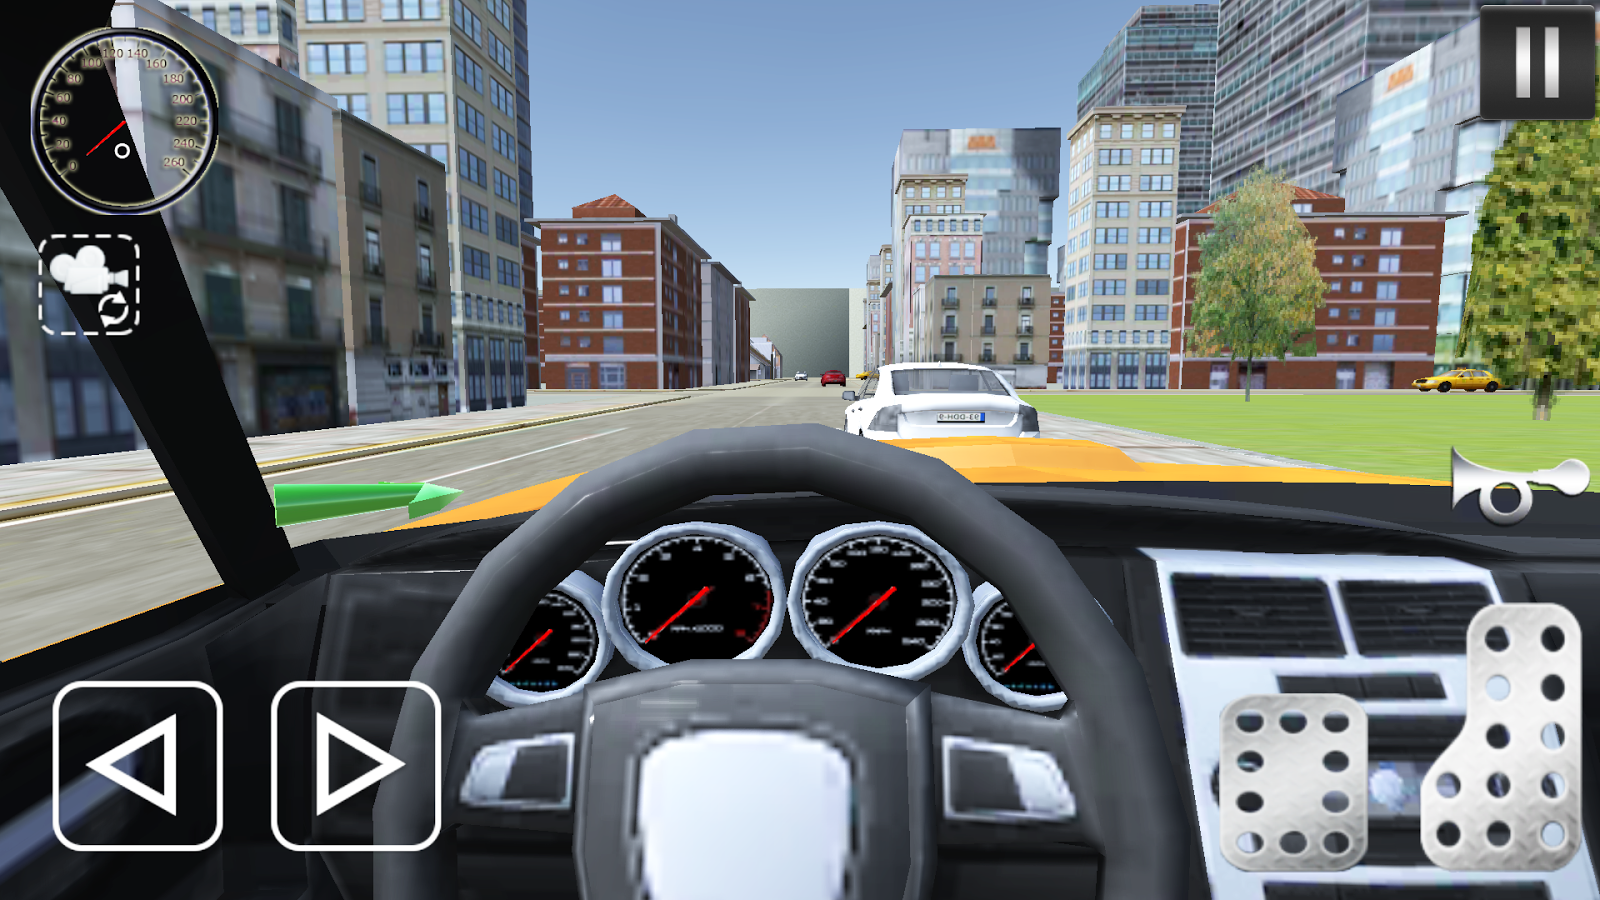 Super car city driving sim free games free online -  Real City Car Driving Sim 2017 5 Screenshot 3